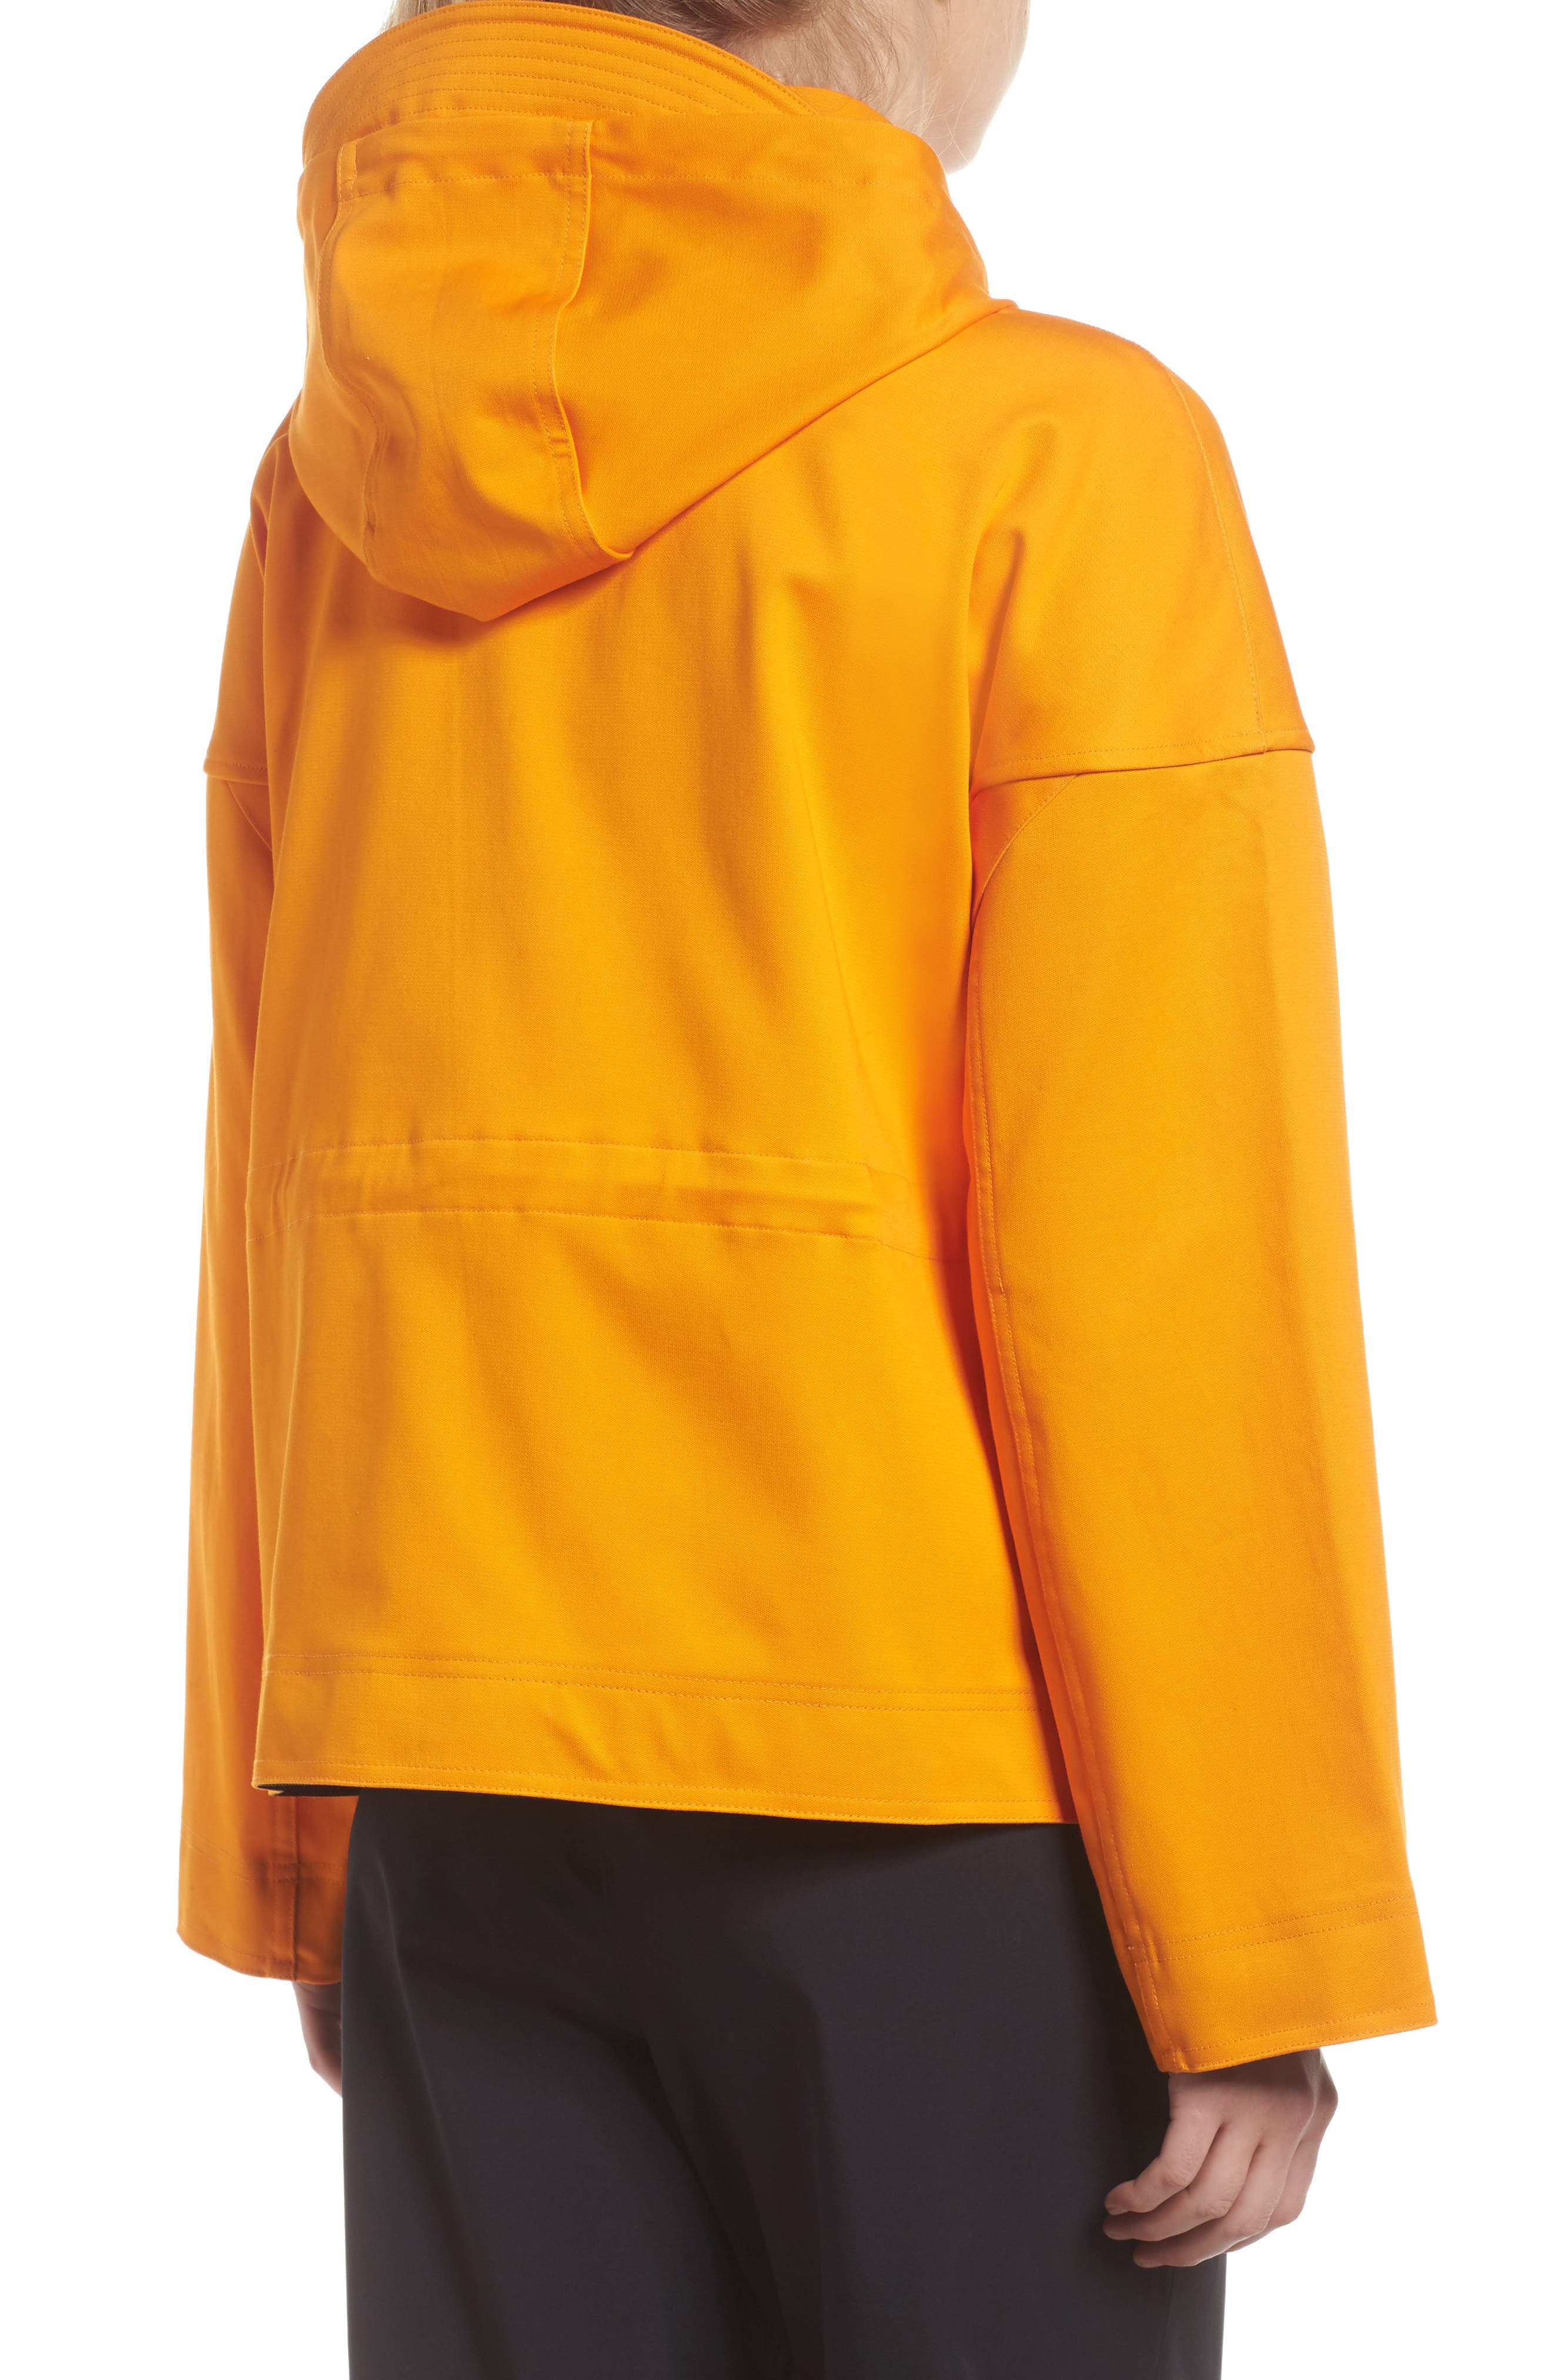 NikeLab Collection Women's Tactical Jacket,                             Alternate thumbnail 4, color,